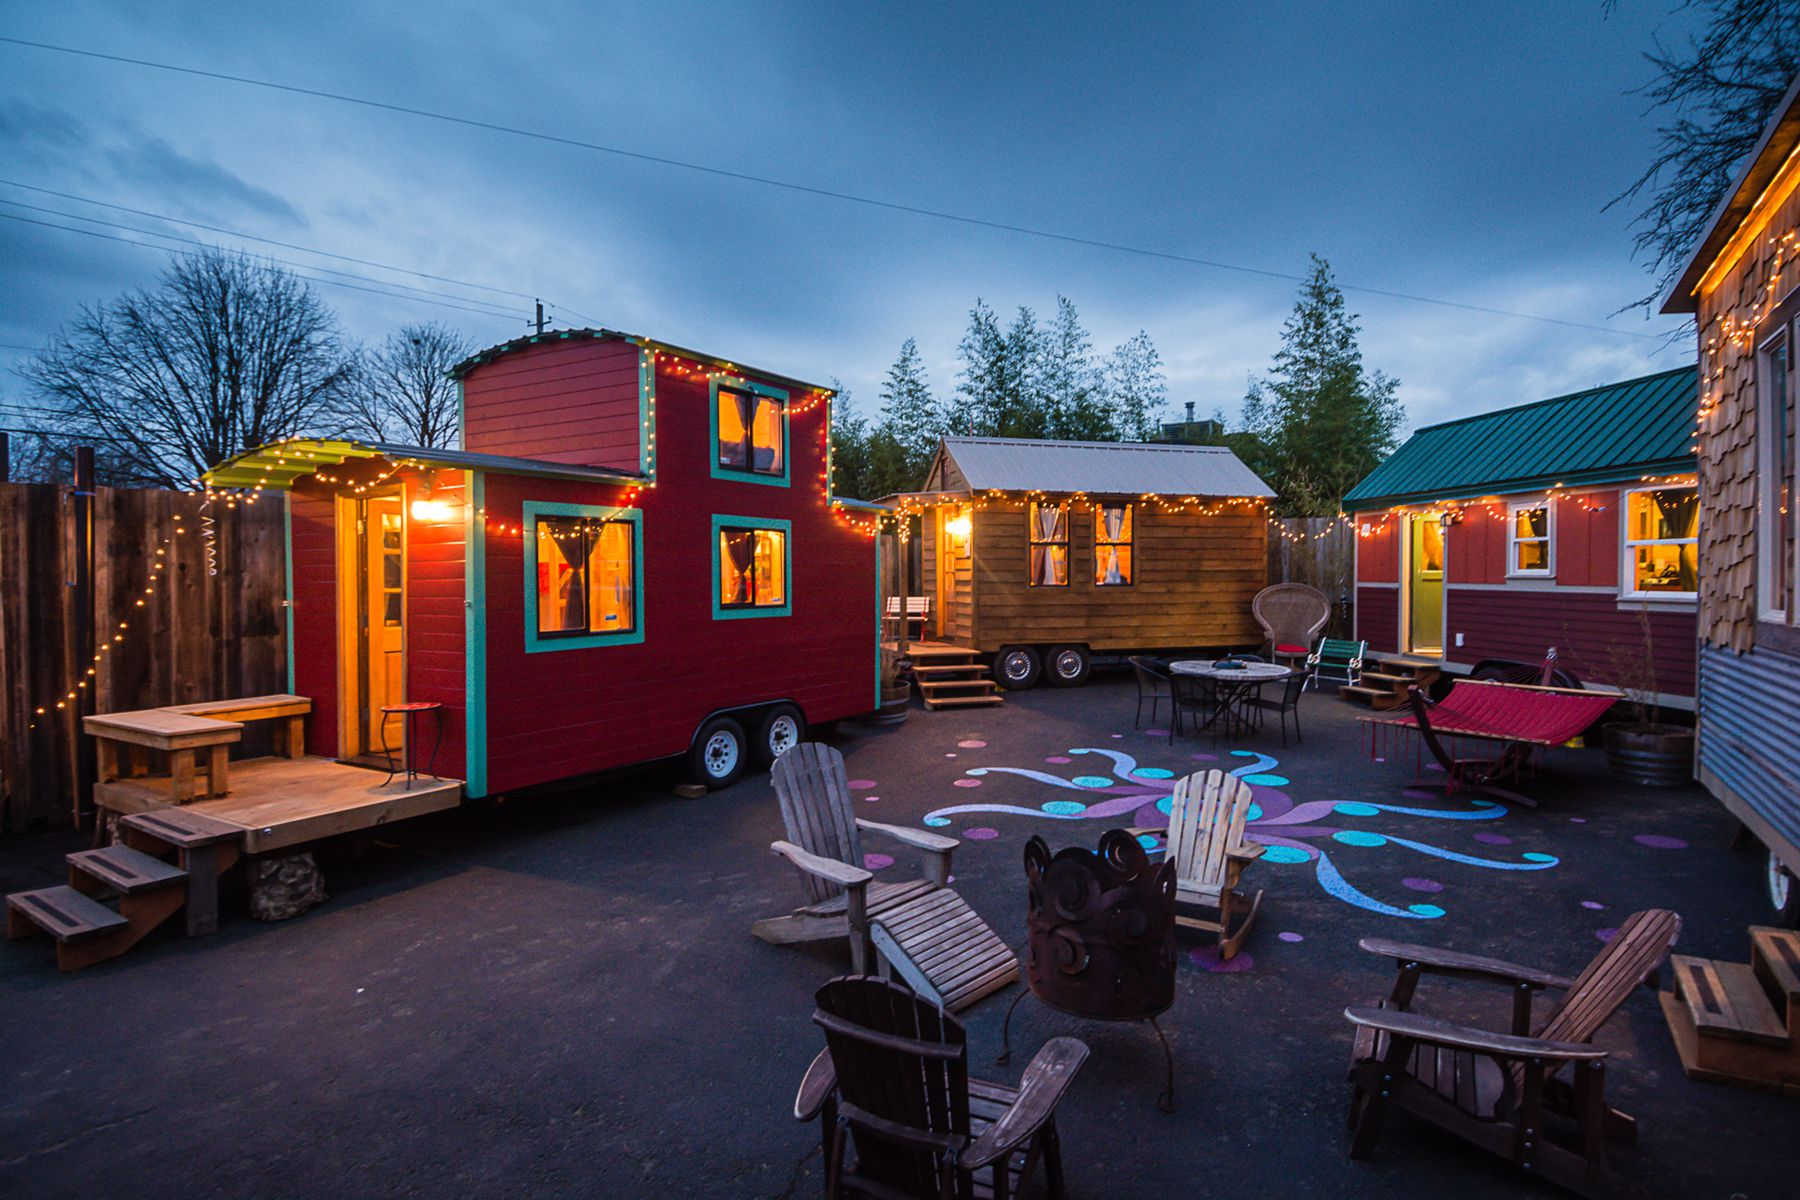 The Caravan Is A One Of A Kind Boutique Hotel